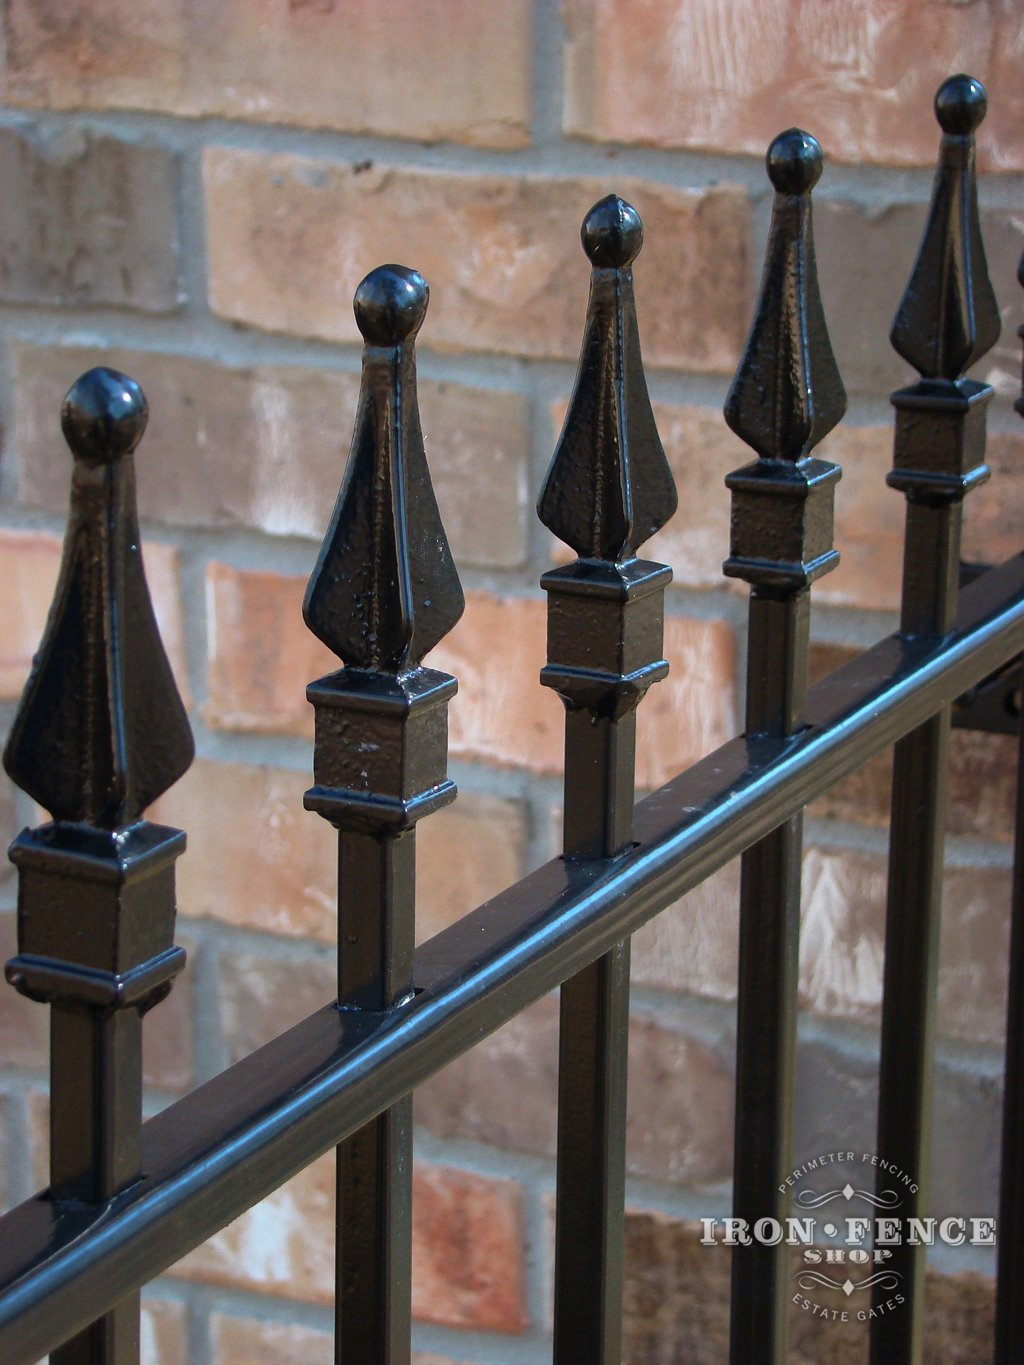 Iron Shop Wrought Iron Fence Iron Fence Shop